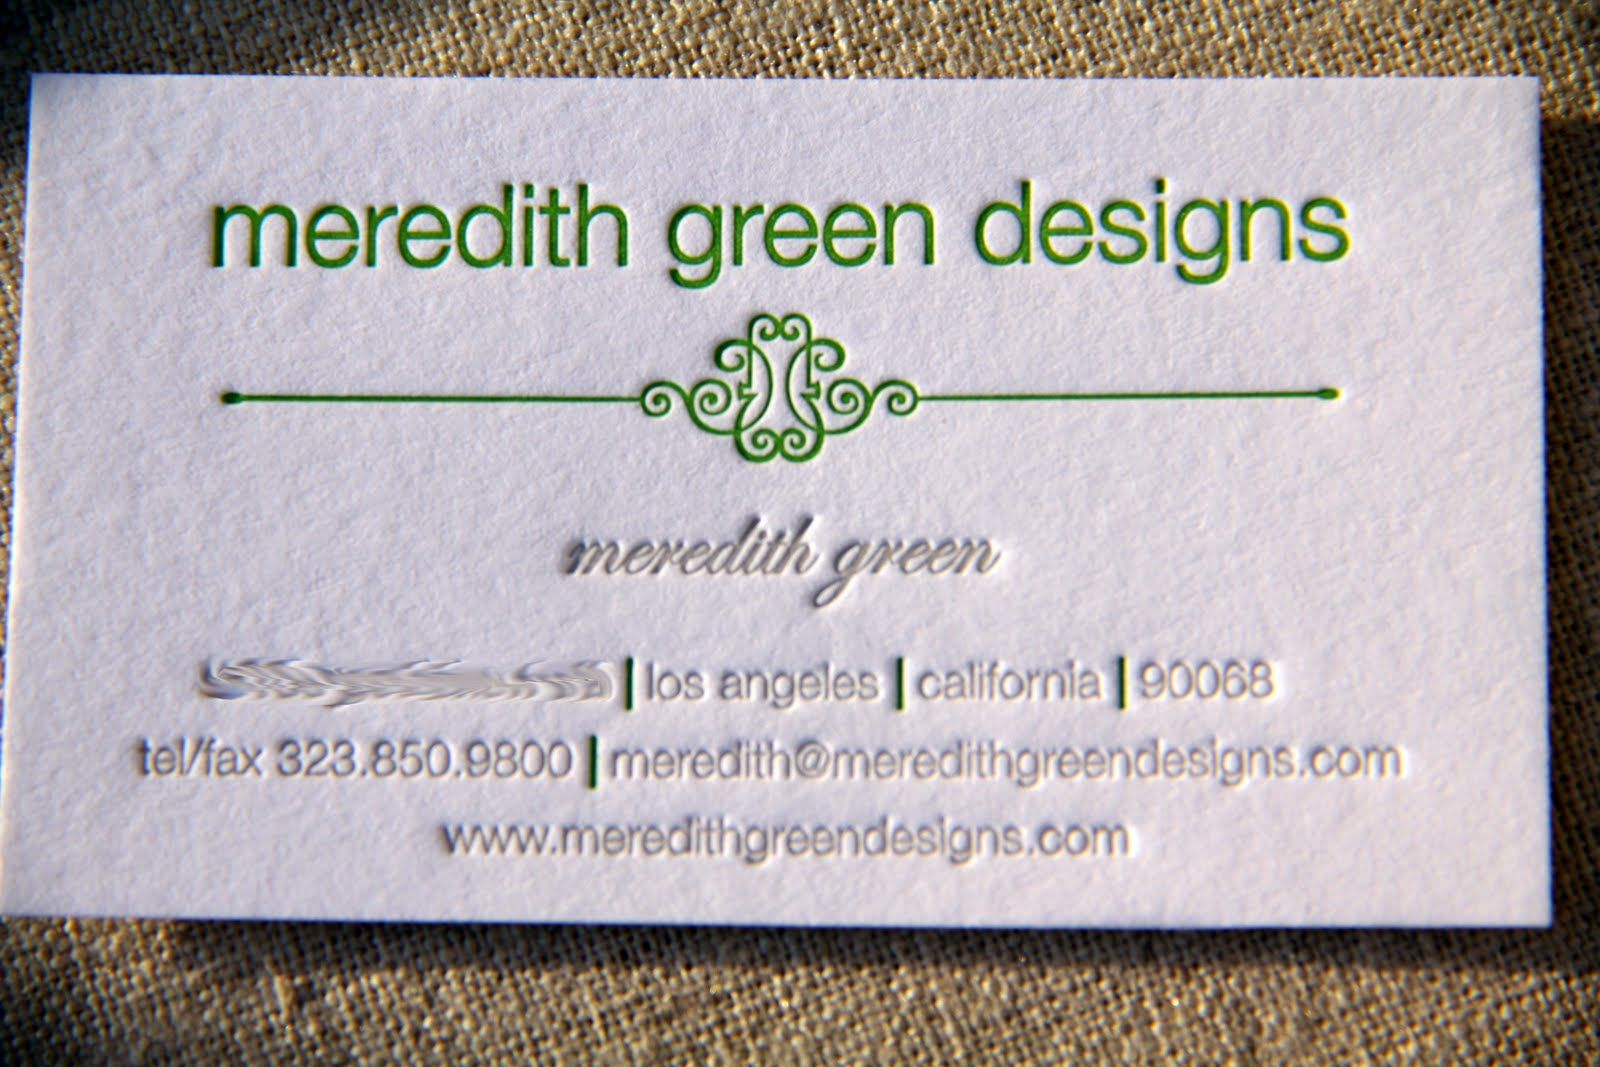 Interior Design Business Card Designs: business card for ...